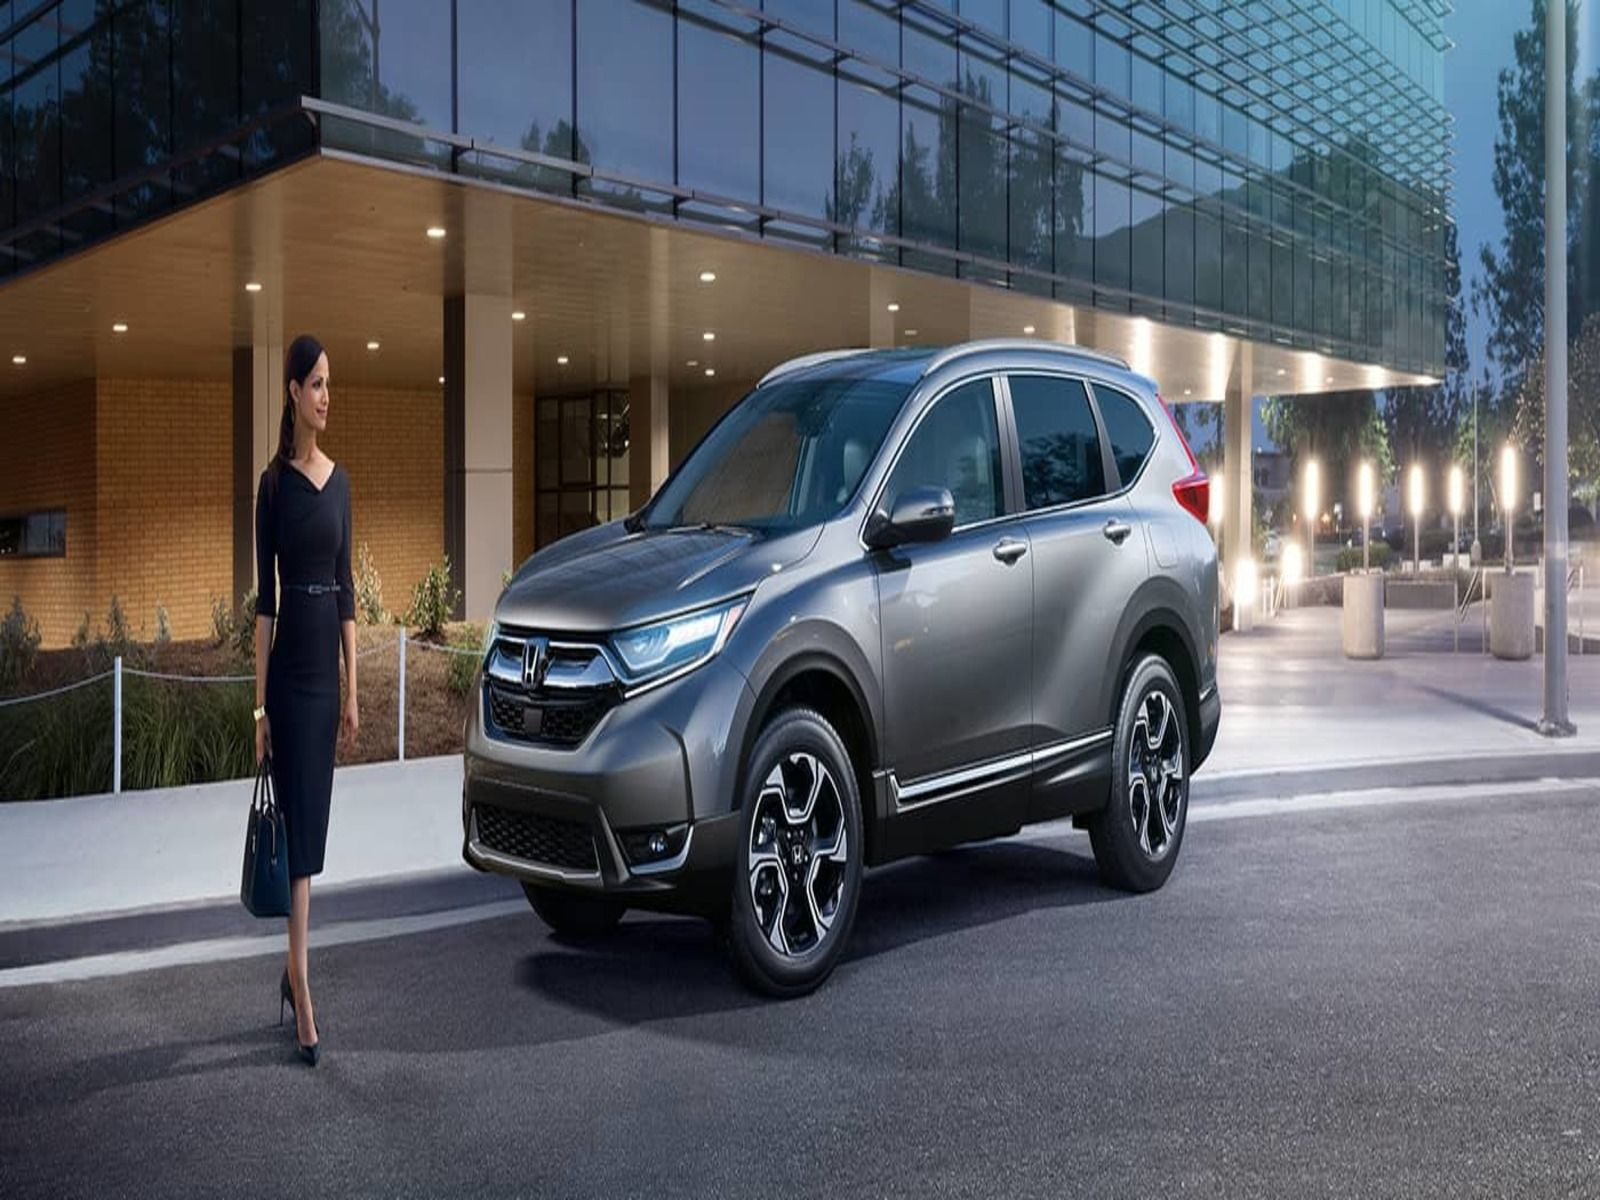 Honda CRV Lease Specials Nj Check more at https//www